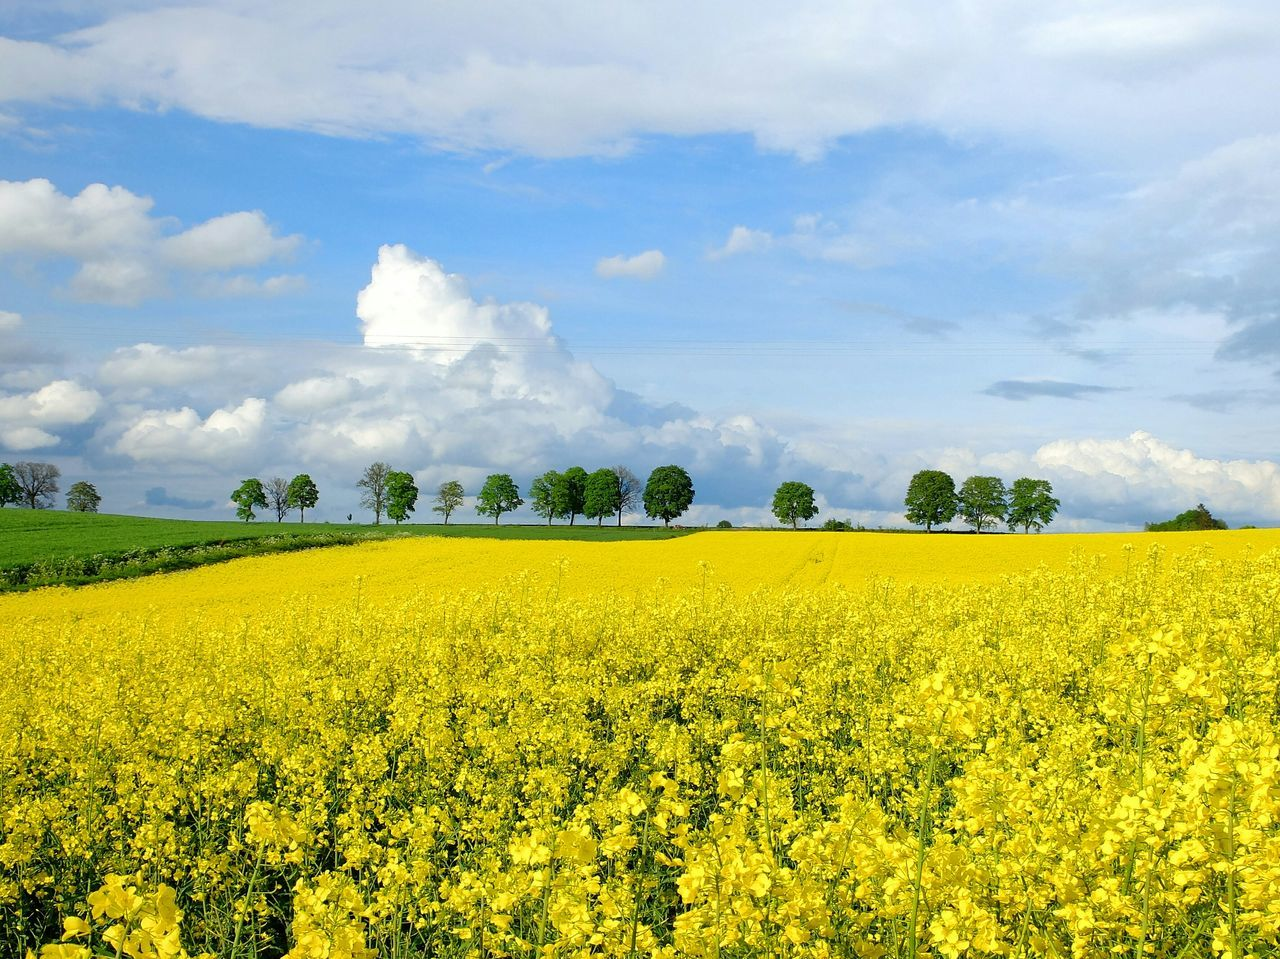 Agriculture Crop  Field Cloud - Sky Rural Scene Beauty In Nature Farm Nature Yellow Growth Flower Sky Day Outdoors Freshness Scenics Summer Tranquil Scene Landscape Poland Warmia The Great Outdoors - 2017 EyeEm Awards